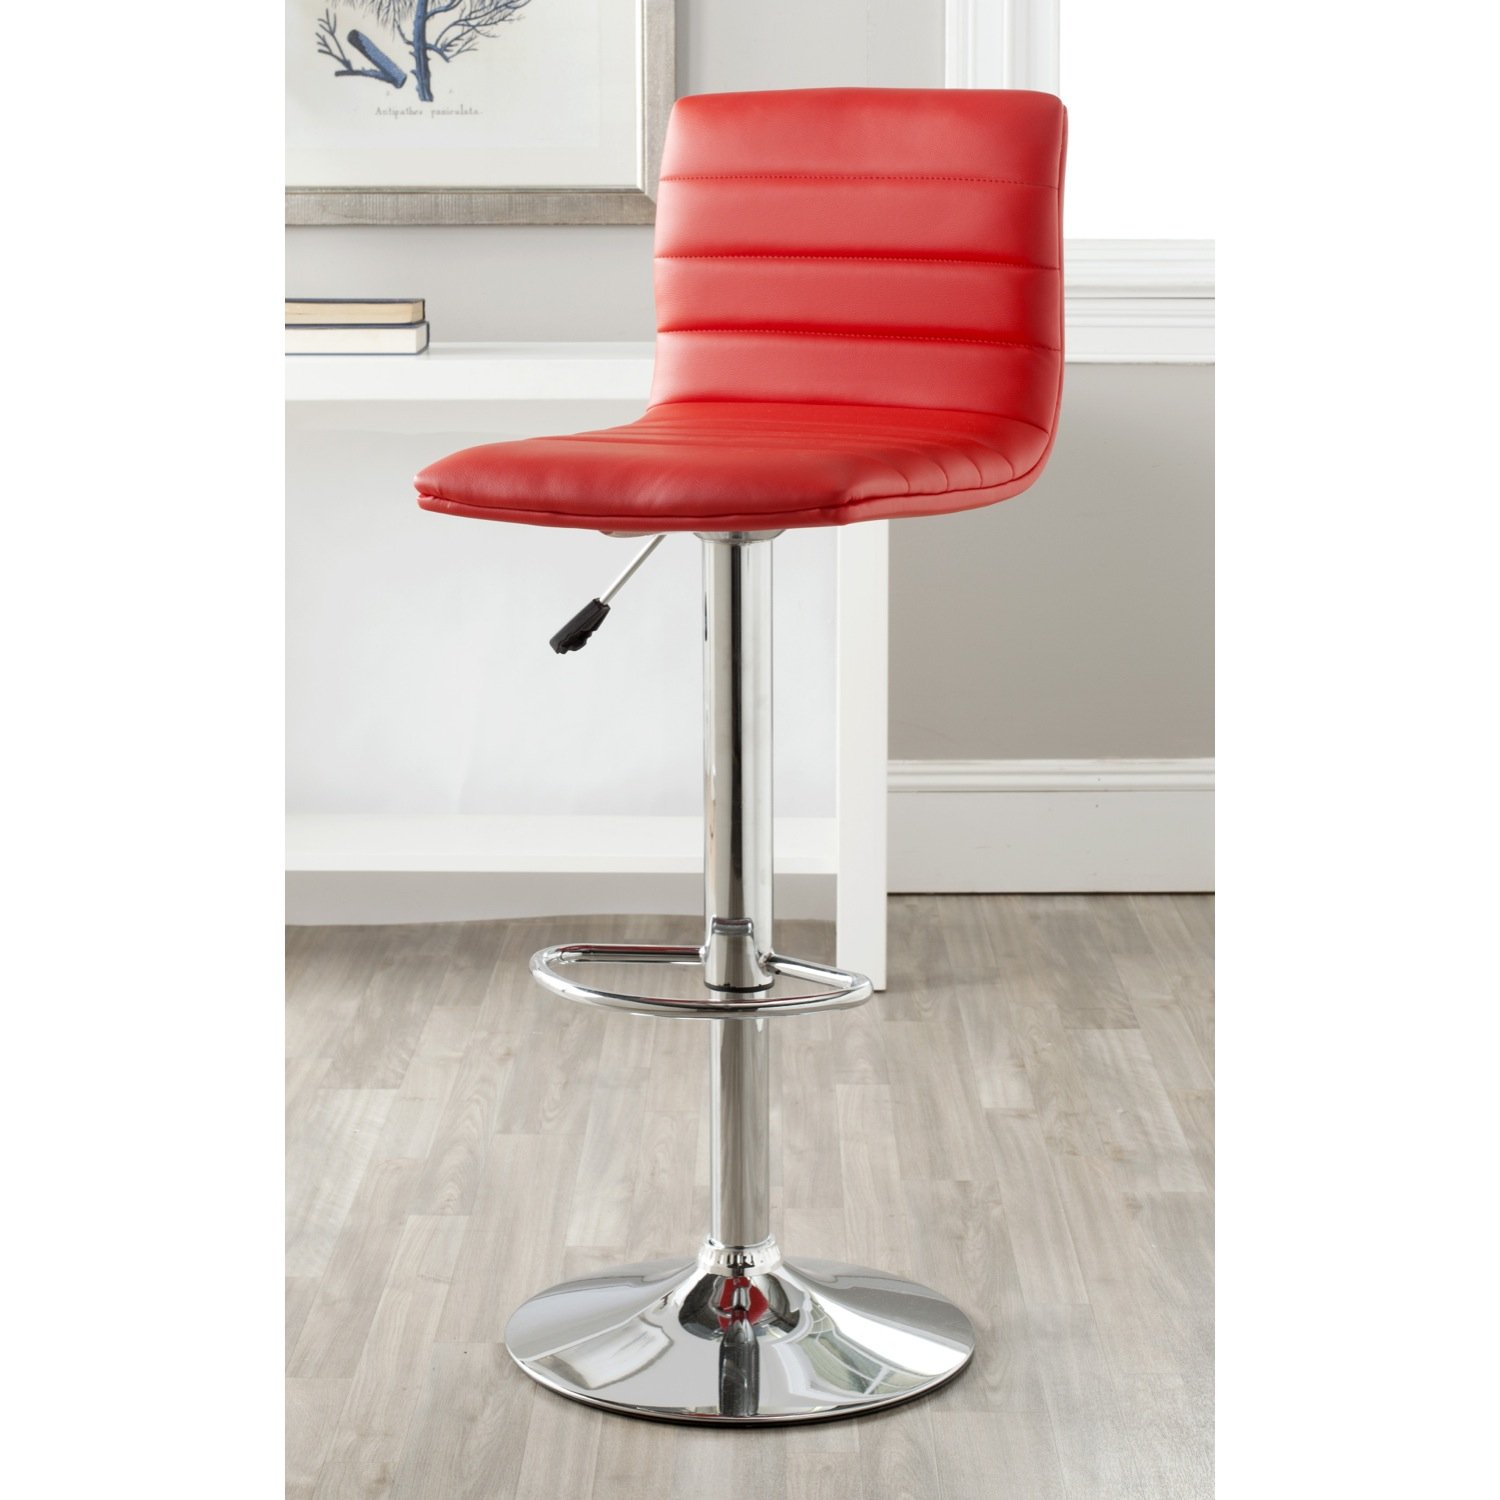 Safavieh Home Collection Arissa Red Adjustable Swivel Gas Lift 23.8-29.9-inch Bar Stool